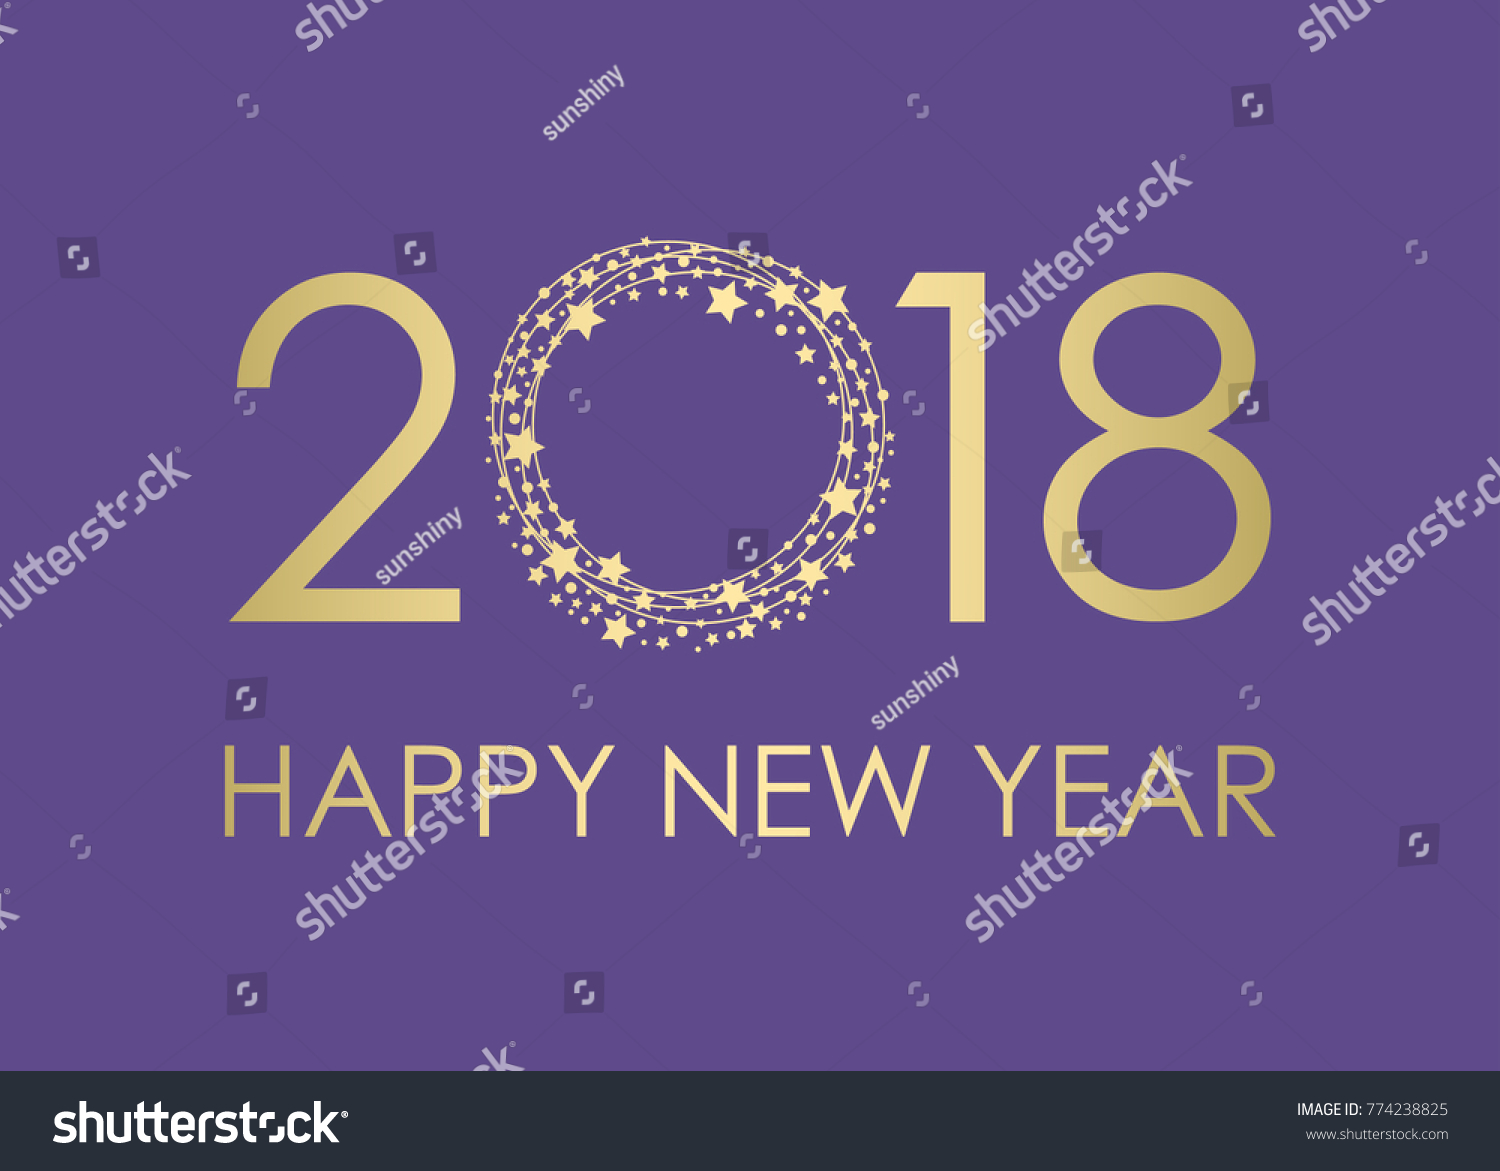 2018 happy new year gold text for card for your design vector illustration